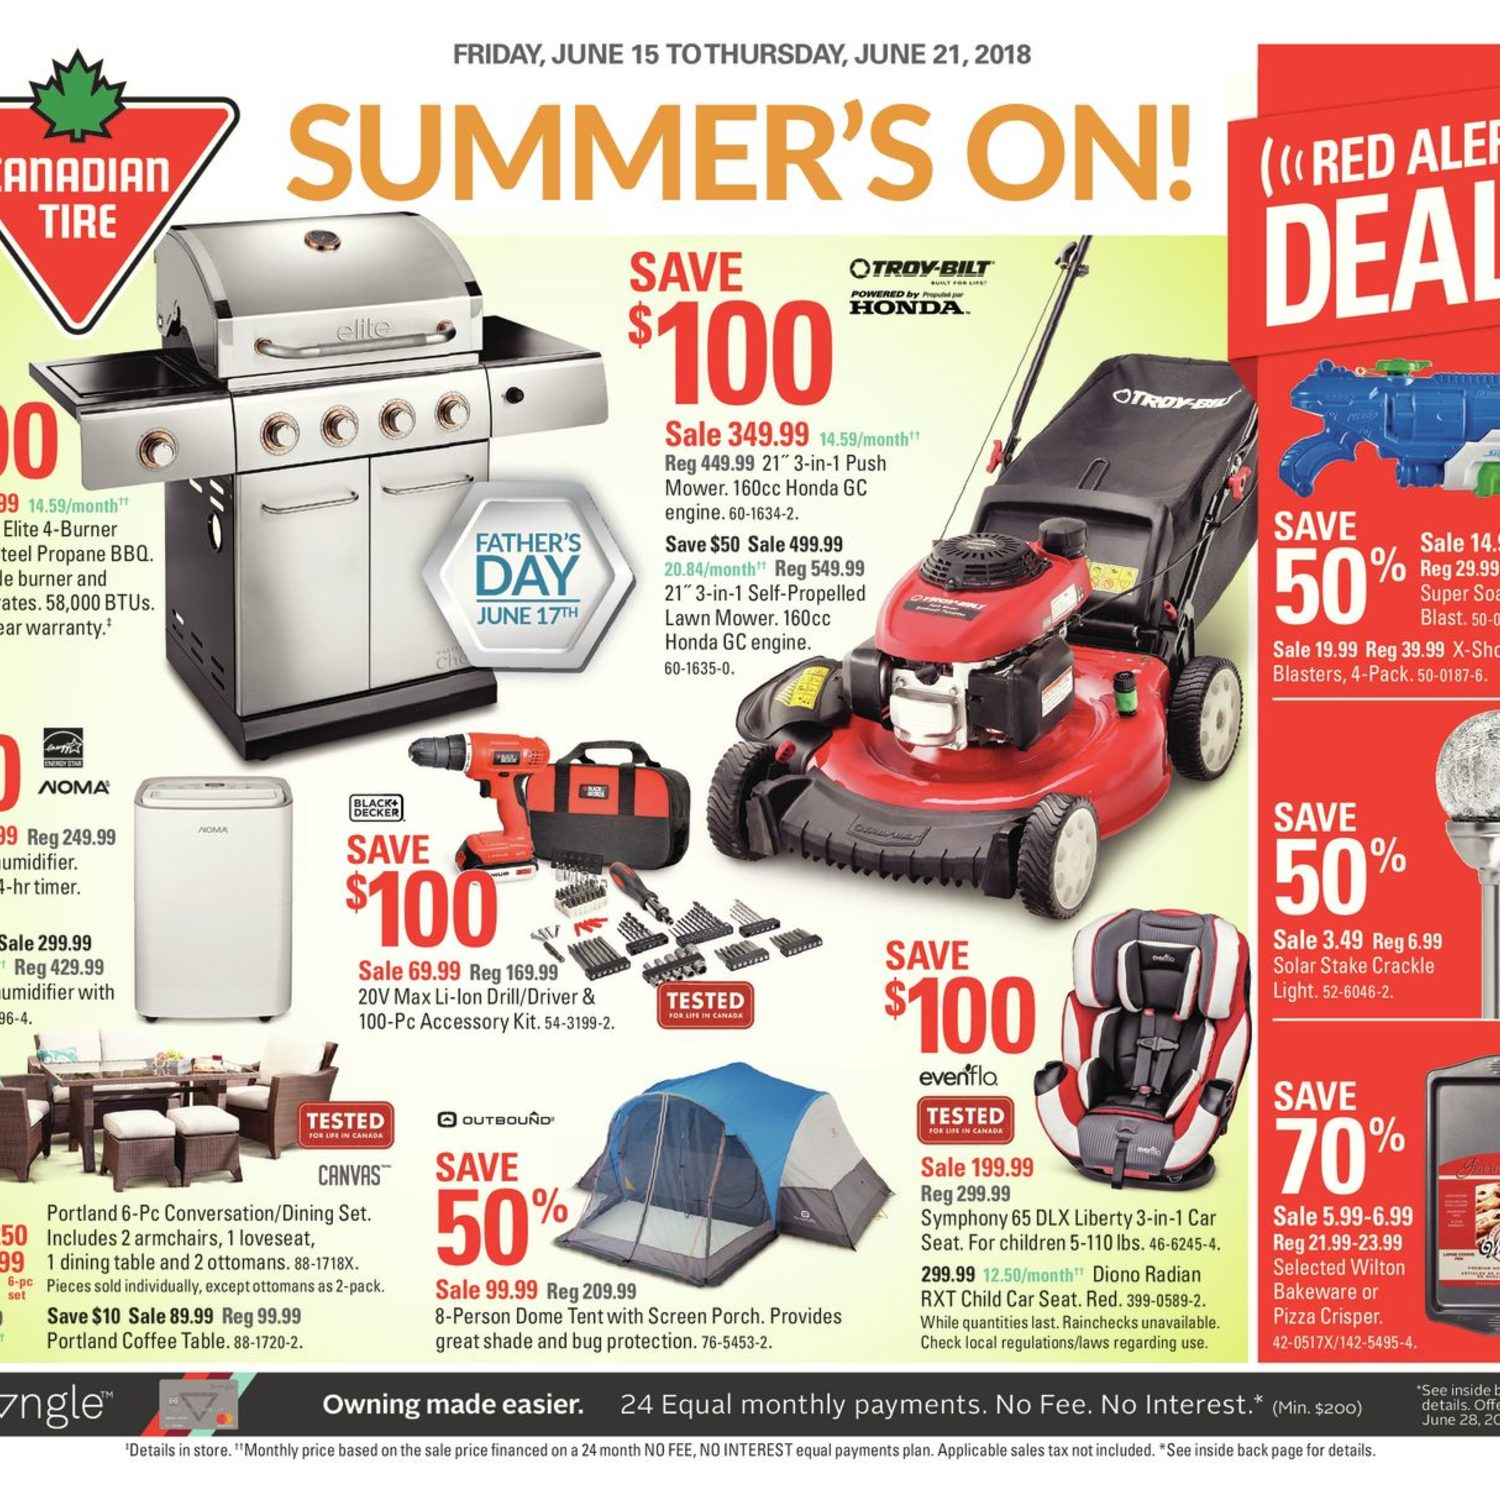 Canadian Tire Weekly Flyer - Weekly - Summer's On - Jun 15 – 21